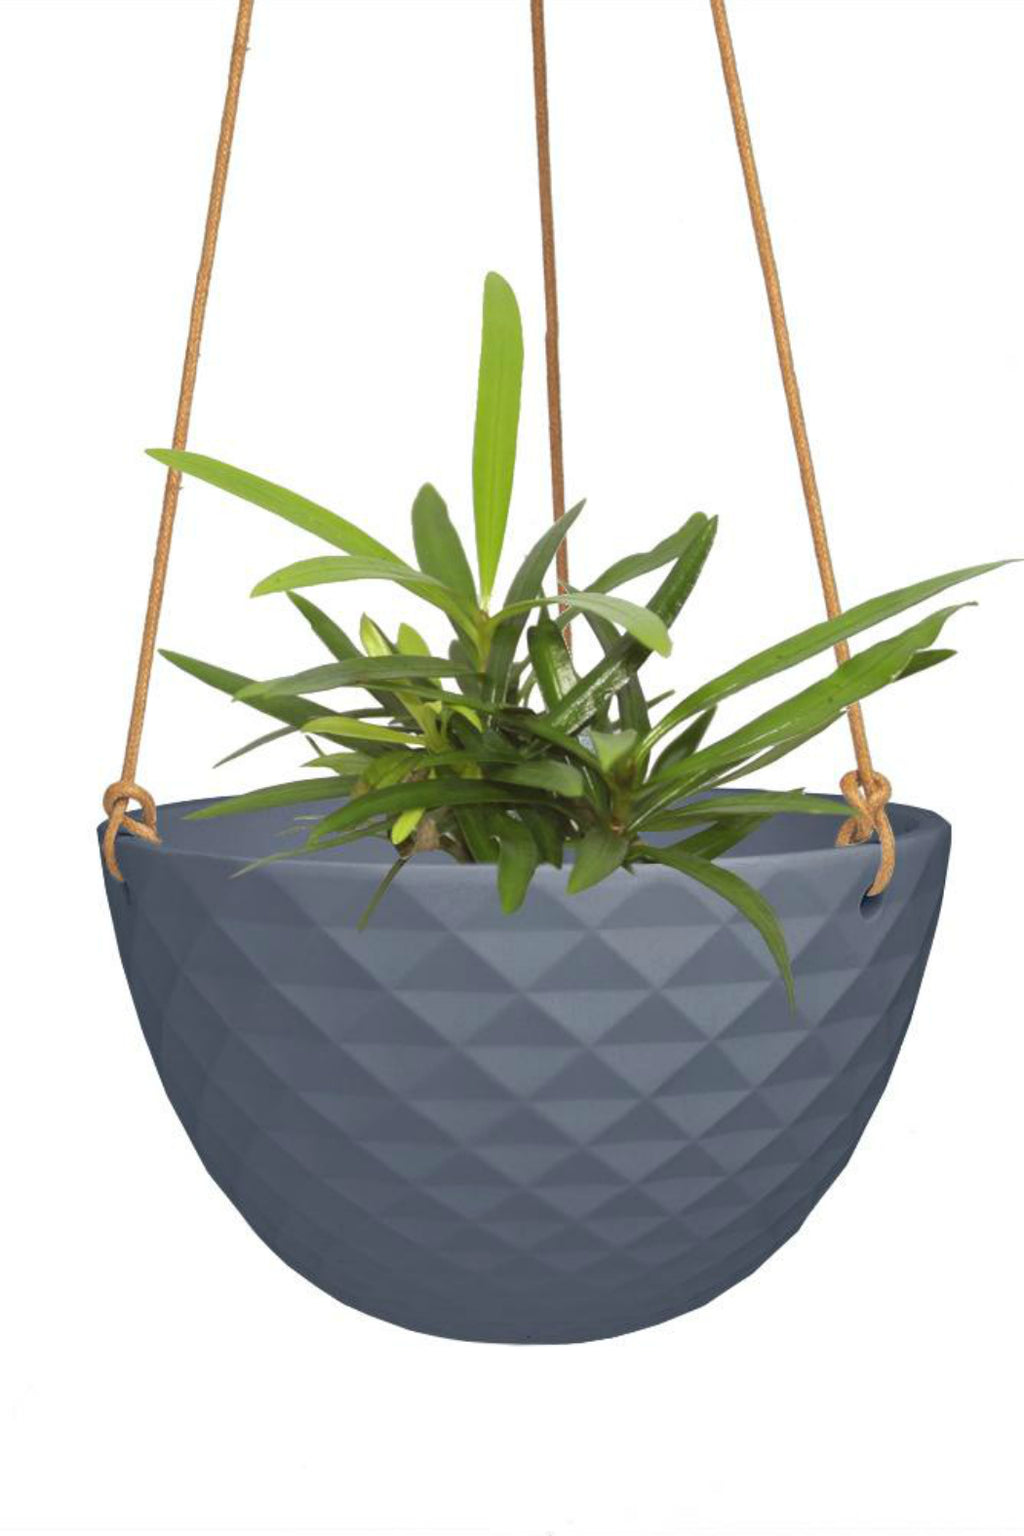 Chive Mini Mofo Hanging Dish Planter, blue